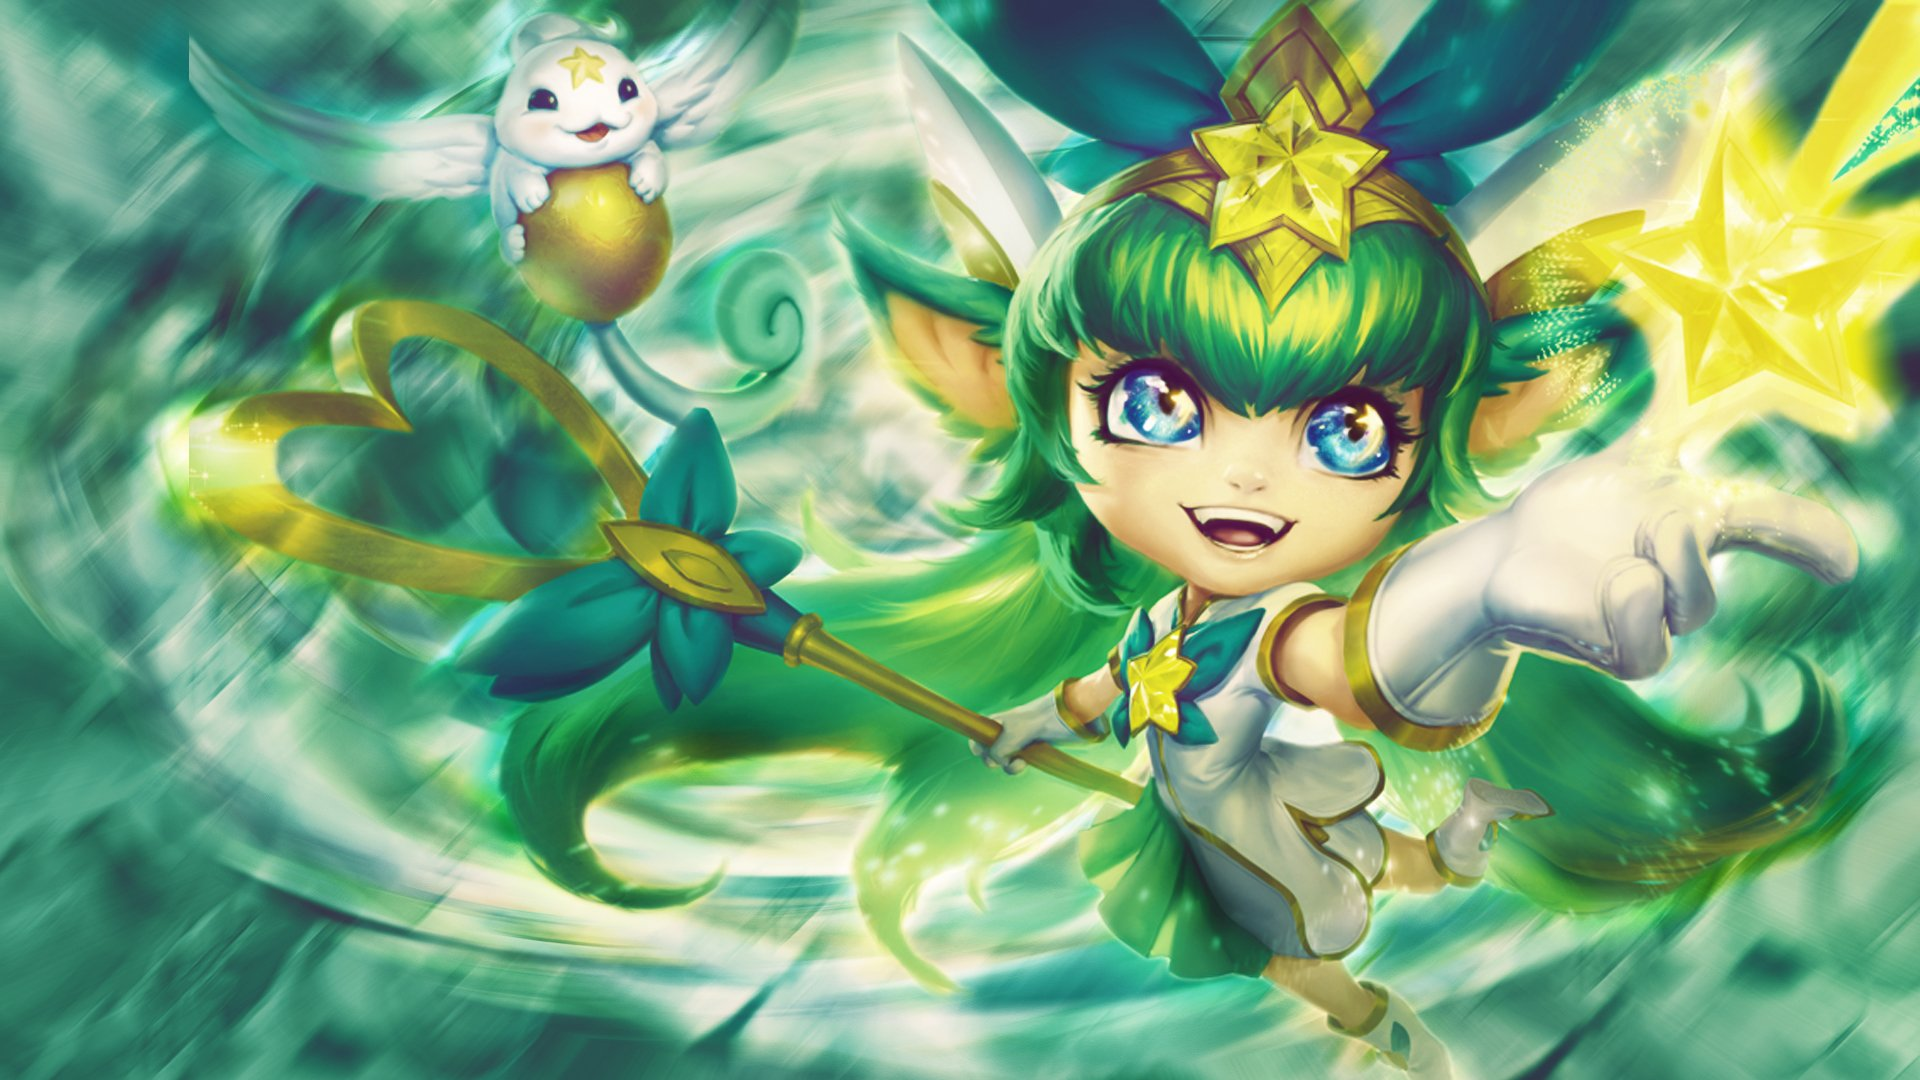 Free Download 1920x1080 Star Guardian Lulu Imgur 1920x1080 For